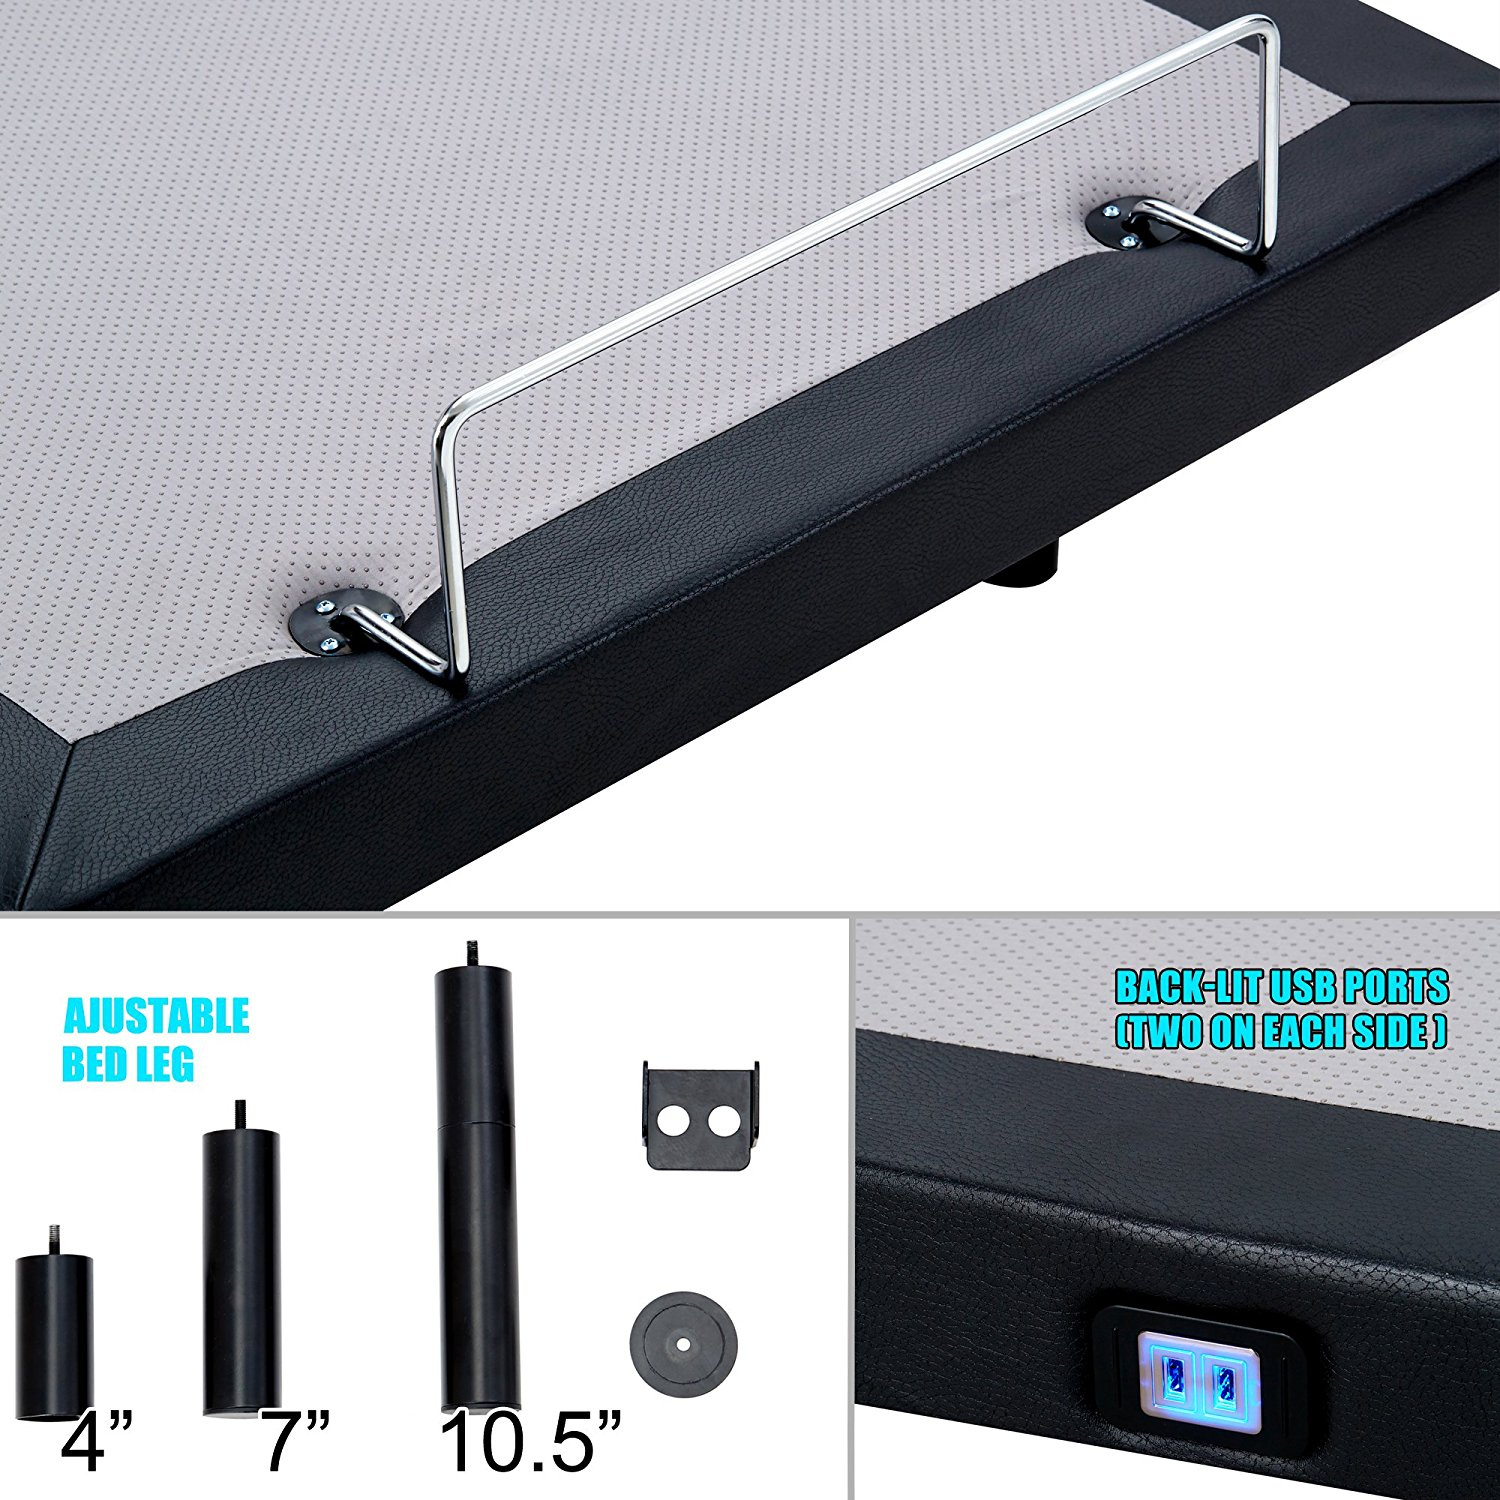 Hofish Adjustable Bed Review USB Ports Mattress Retention System & Height Adjustable Legs